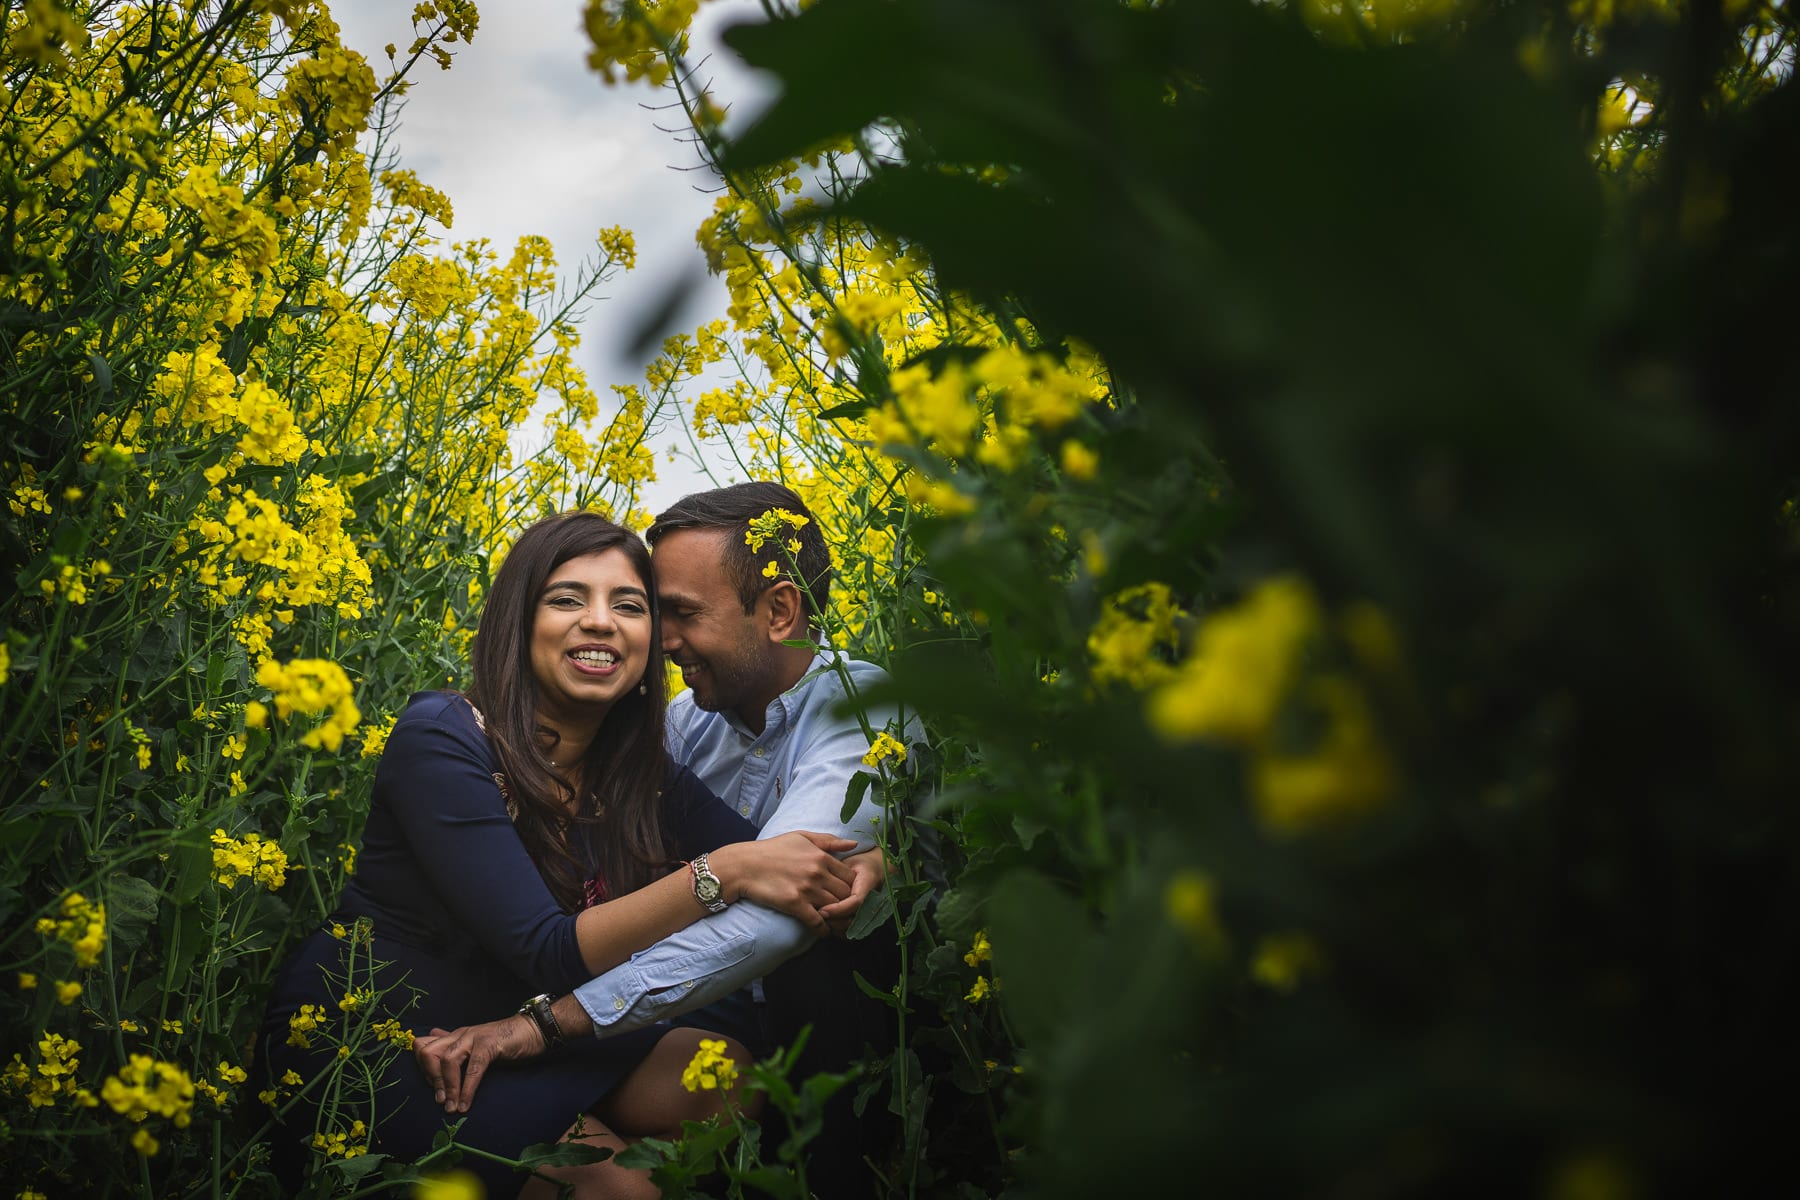 A warwickshire pre wedding photo shoot in a rape seed field full of yellow flowers.